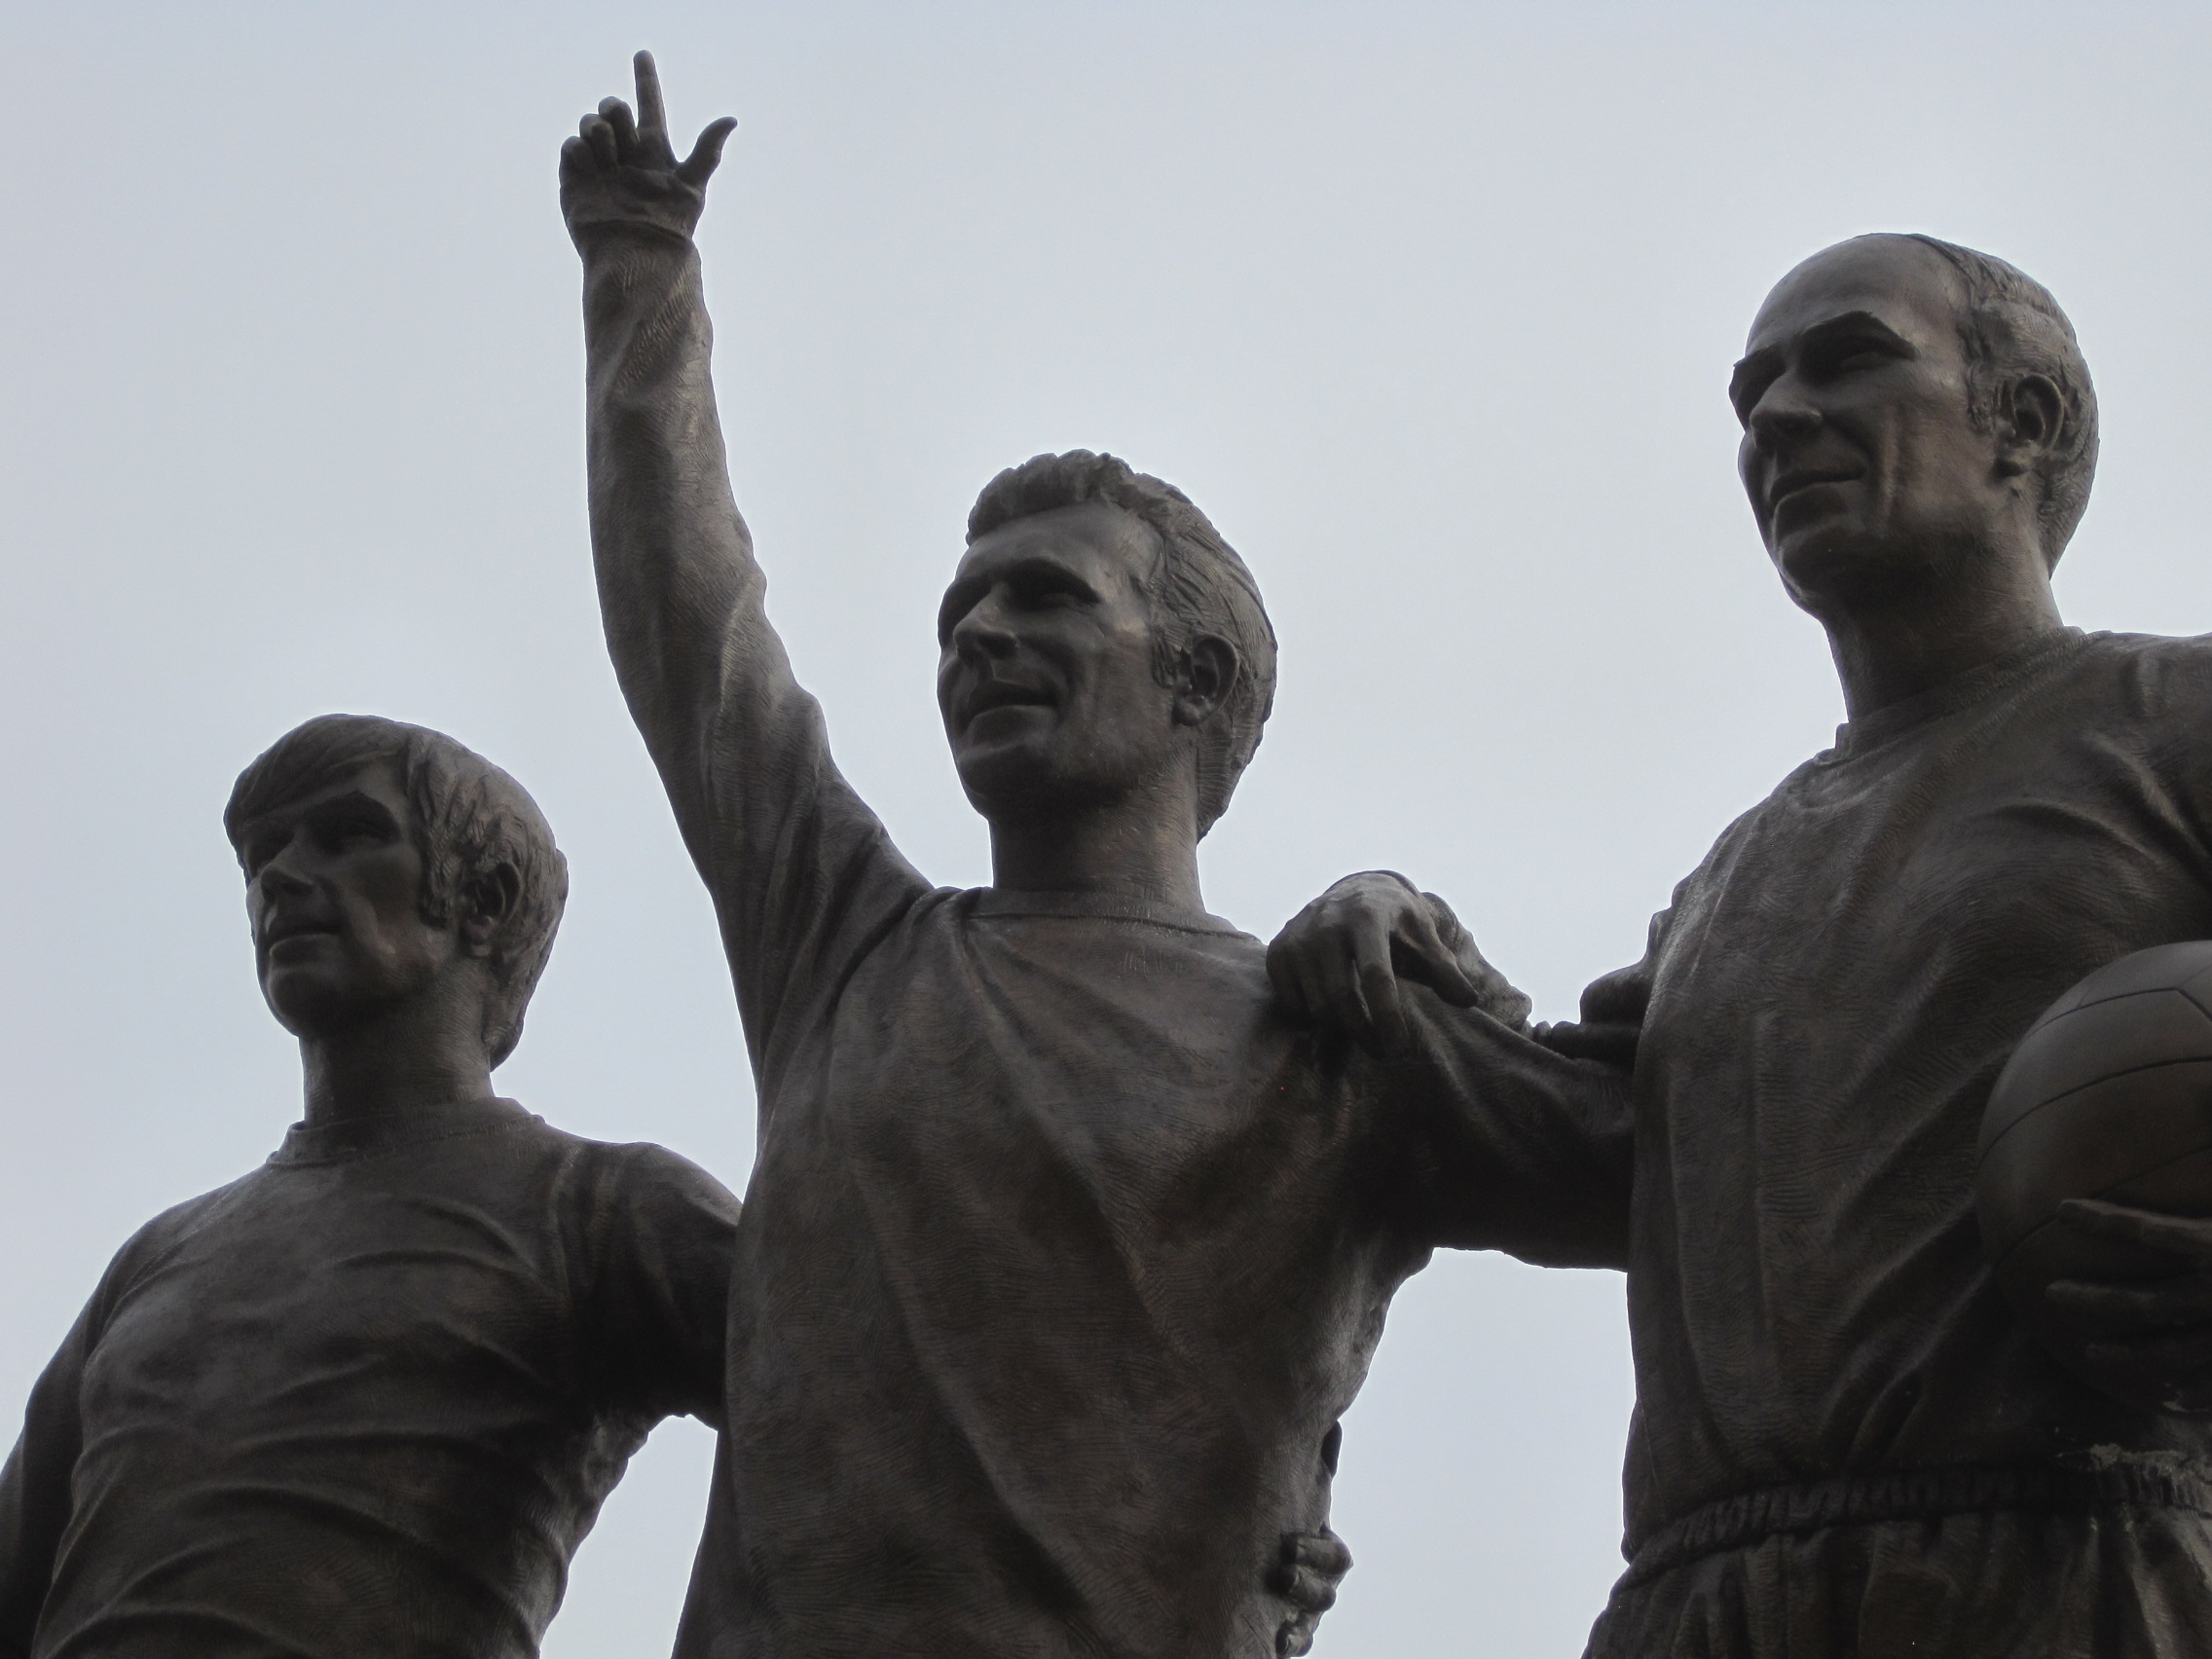 The most photographed statue in football: the holy trinity of Best, Law and Charlton